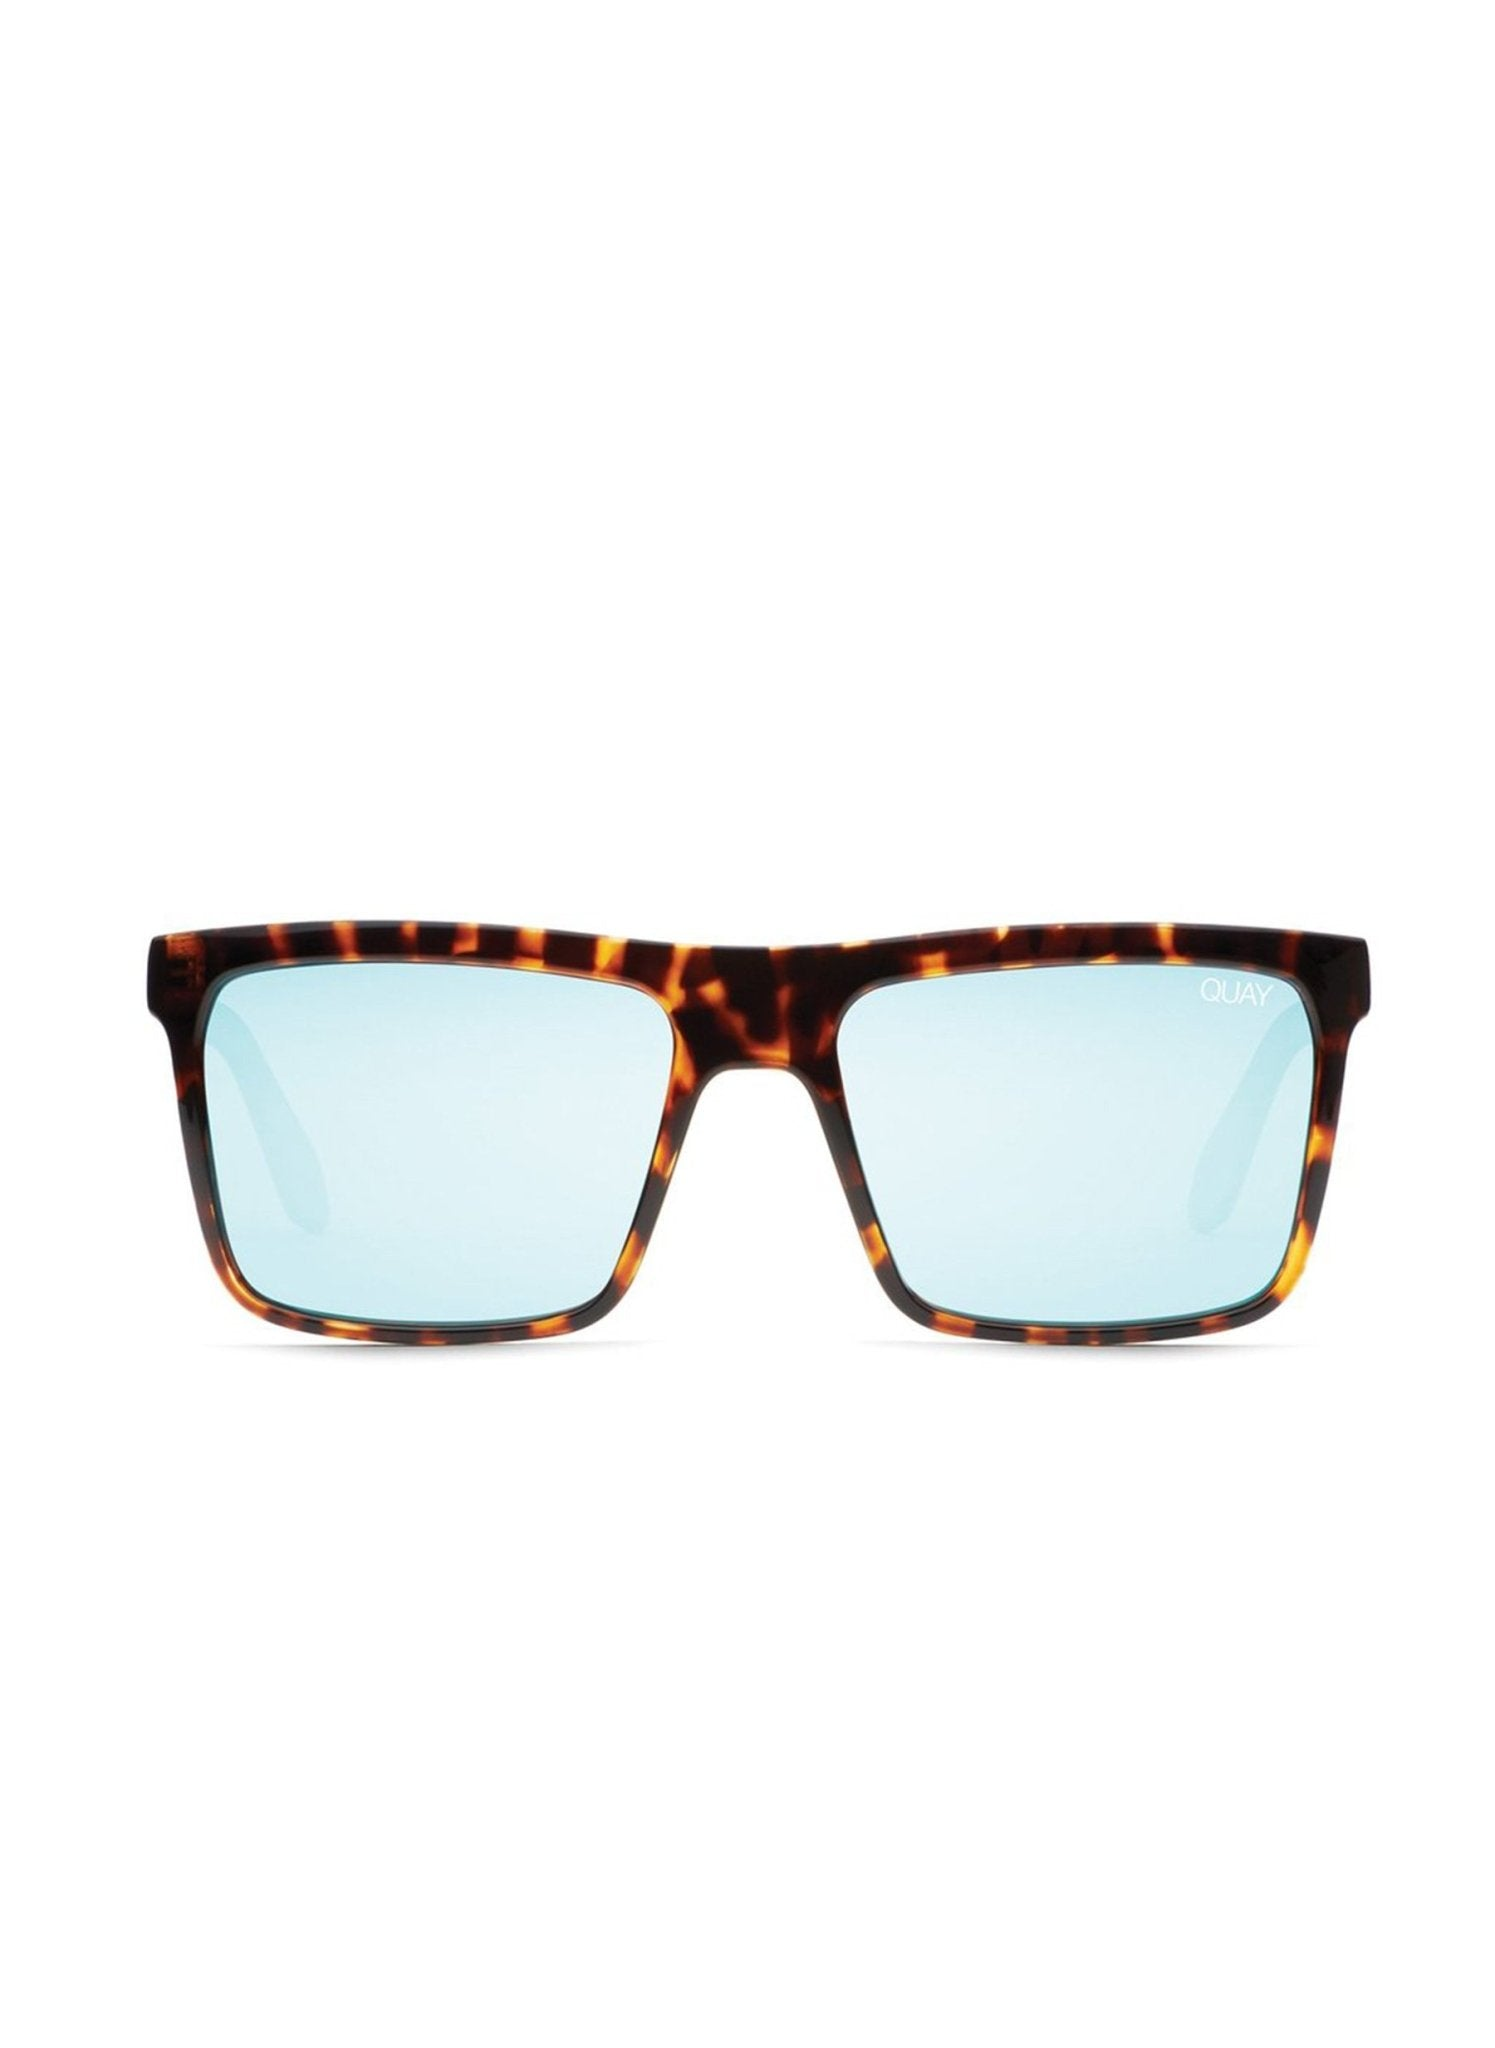 Quay Let It Run Sunglasses - Tortoise - Salty Mermaid Swim